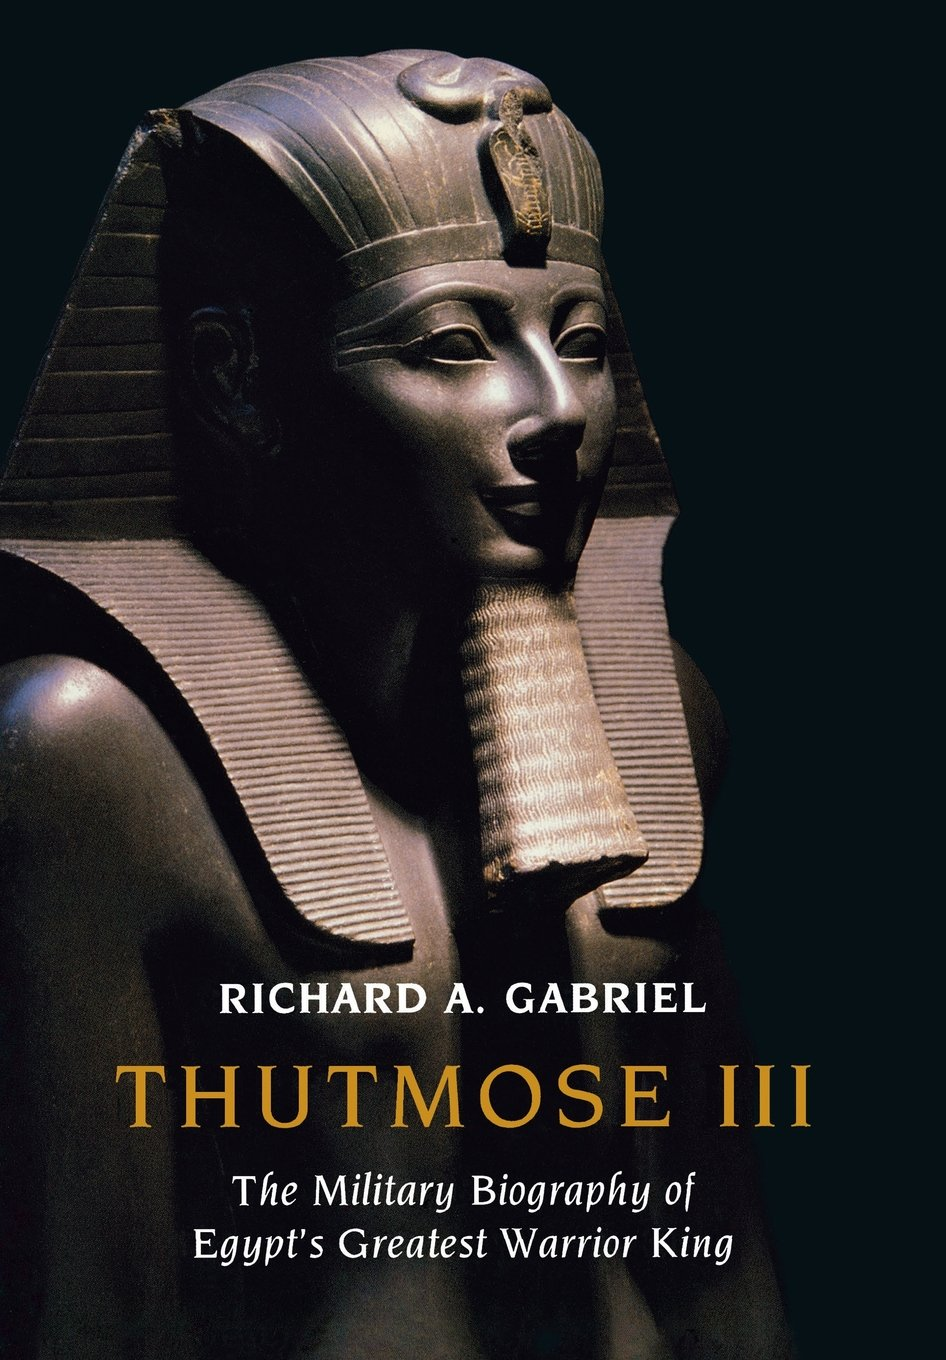 Thutmose Iii The Military Biography Of Egypts Greatest Warrior Pin Emp Generator Jammer Slot Schematic Sche On Pinterest King Richard A Gabriel 9781597973731 Amazoncom Books